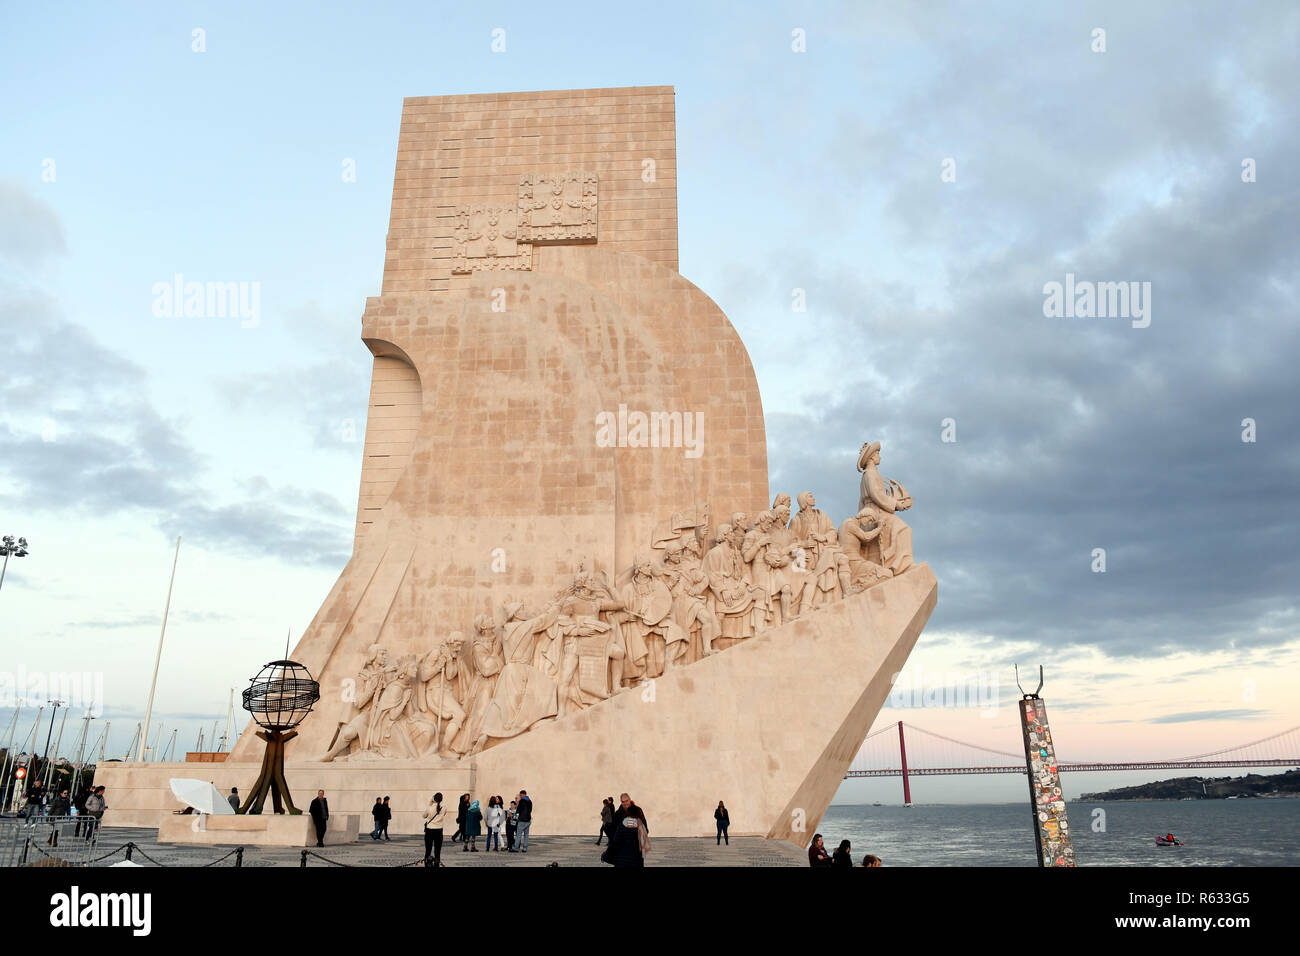 (181203) -- LISBON, Dec. 3, 2018 (Xinhua) -- Photo taken on Nov. 23, 2018 shows the Monument to the Discoveries on the Lisbon waterfront in Portugal. (Xinhua/Zhang Liyun)(mp) - Stock Image